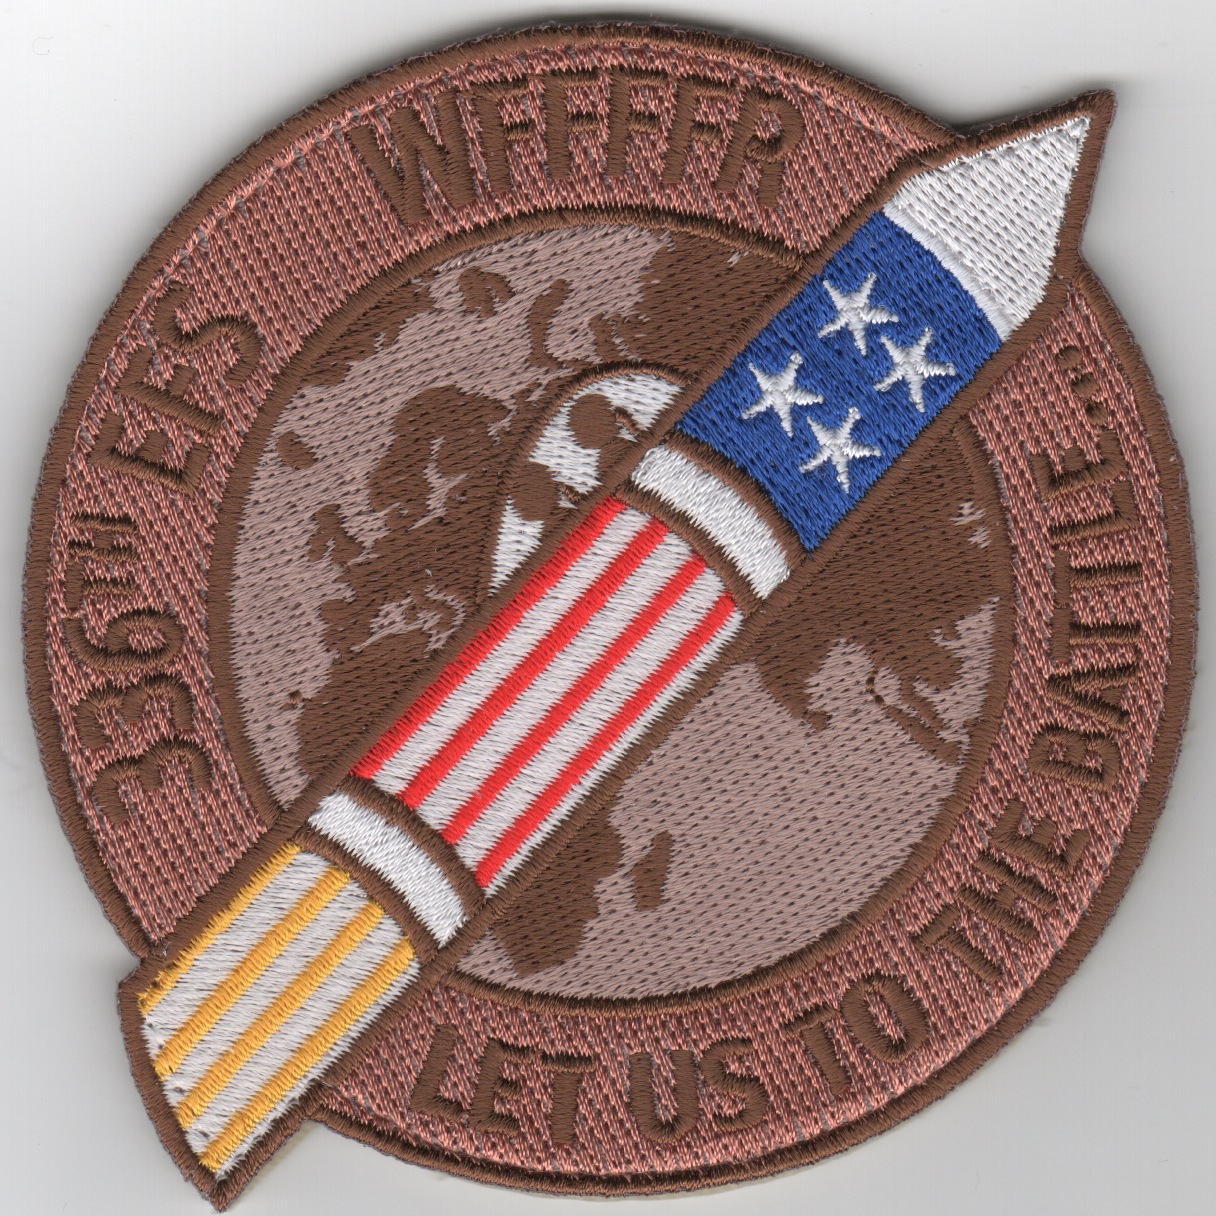 336FS F-15E 'Let Us To The Battle' Patch (Des)